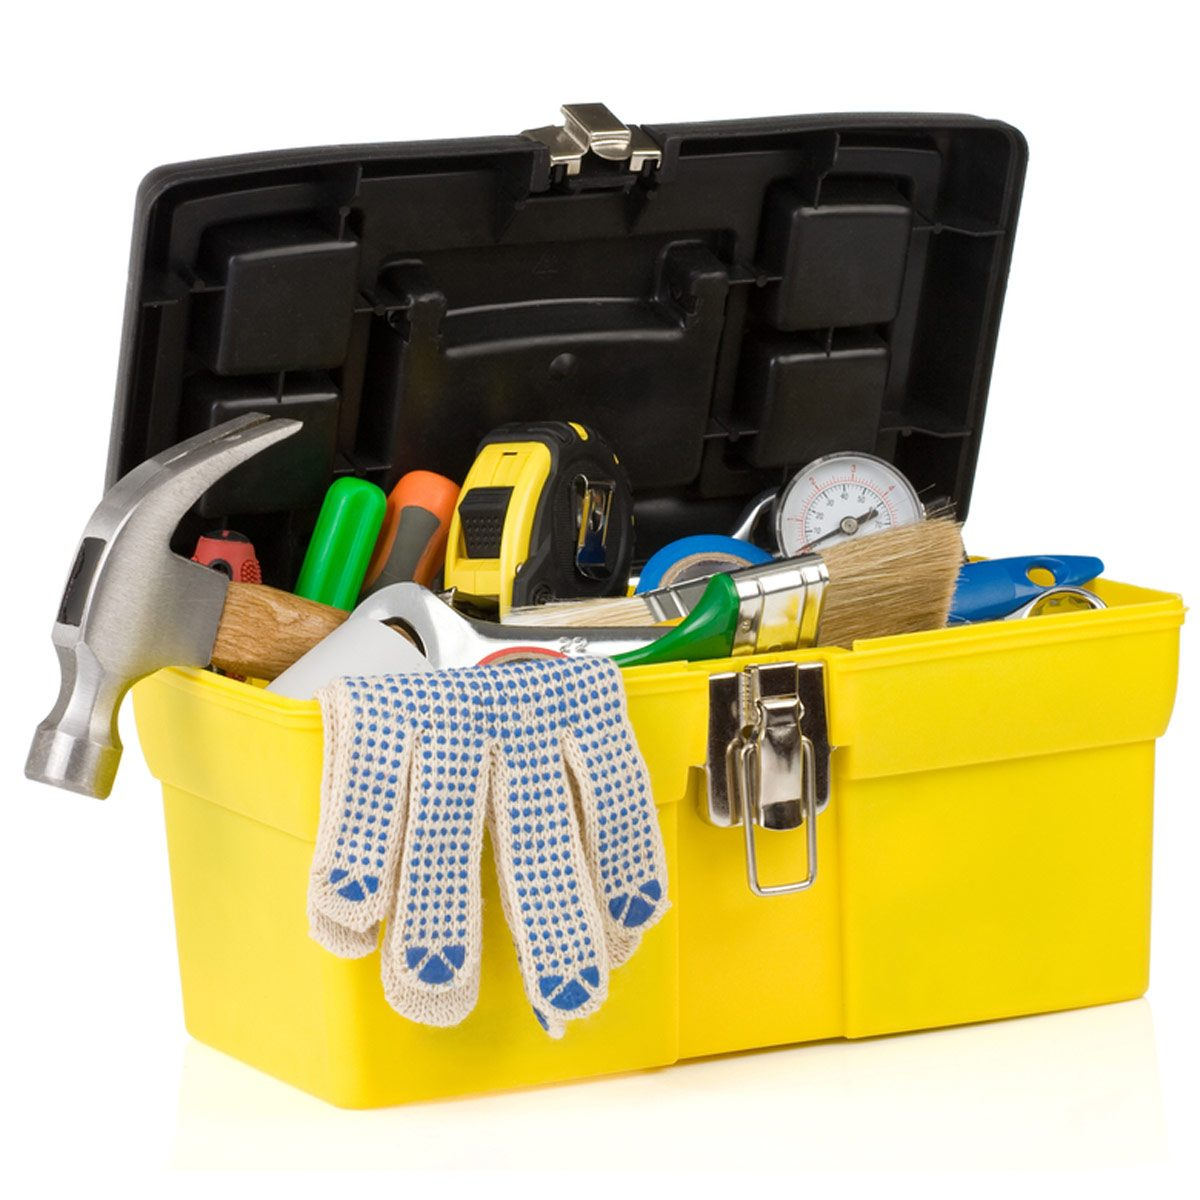 The Toolkit